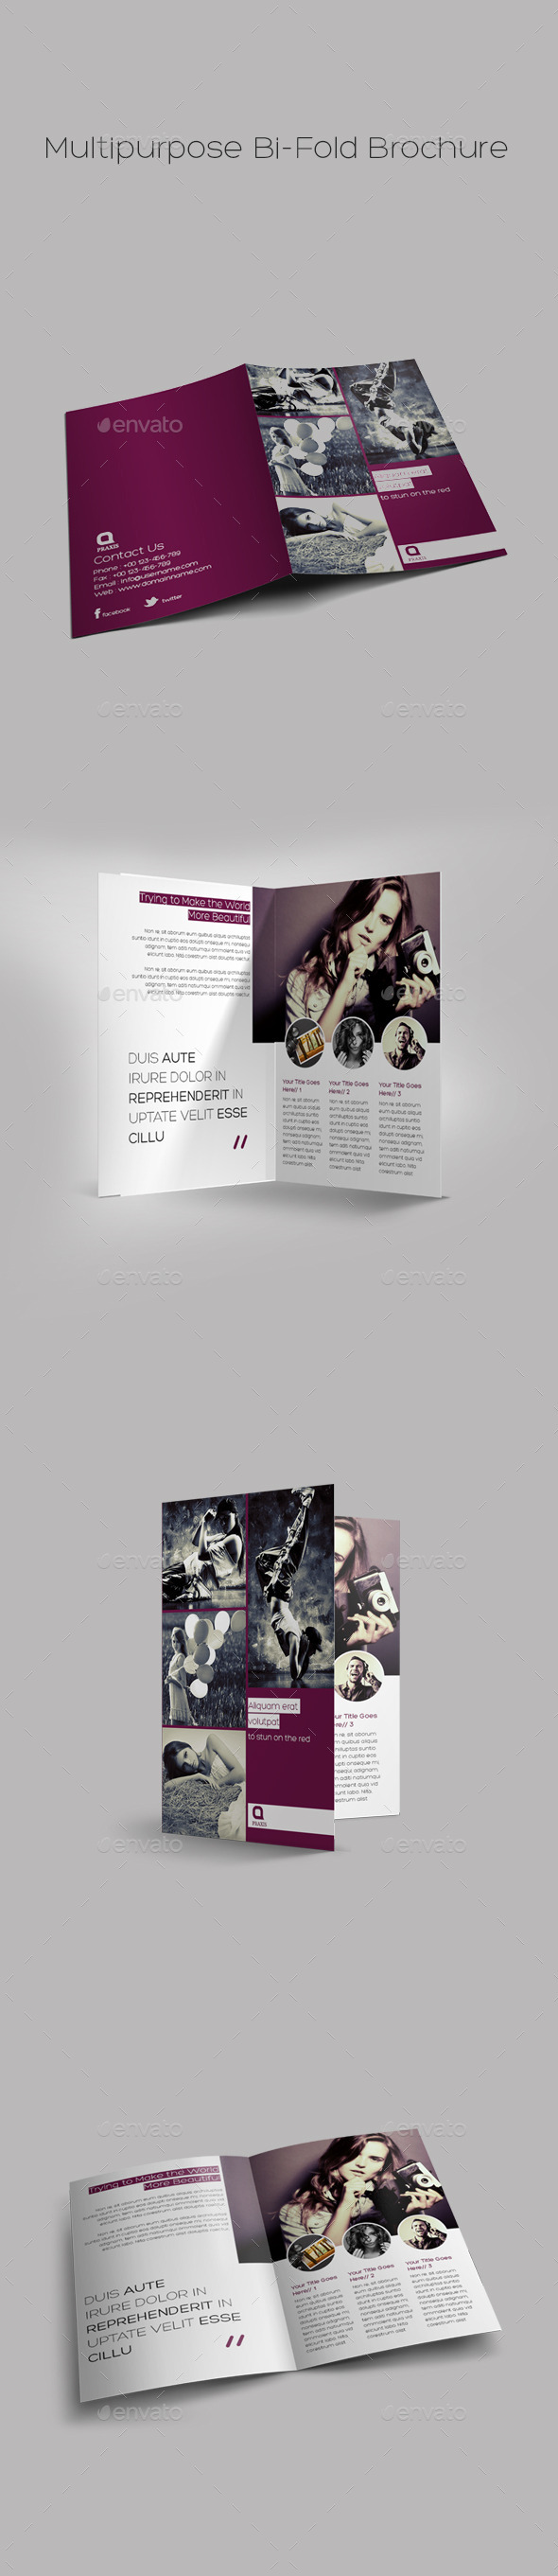 GraphicRiver Multipurpose Bi-Fold Brochure 9585465